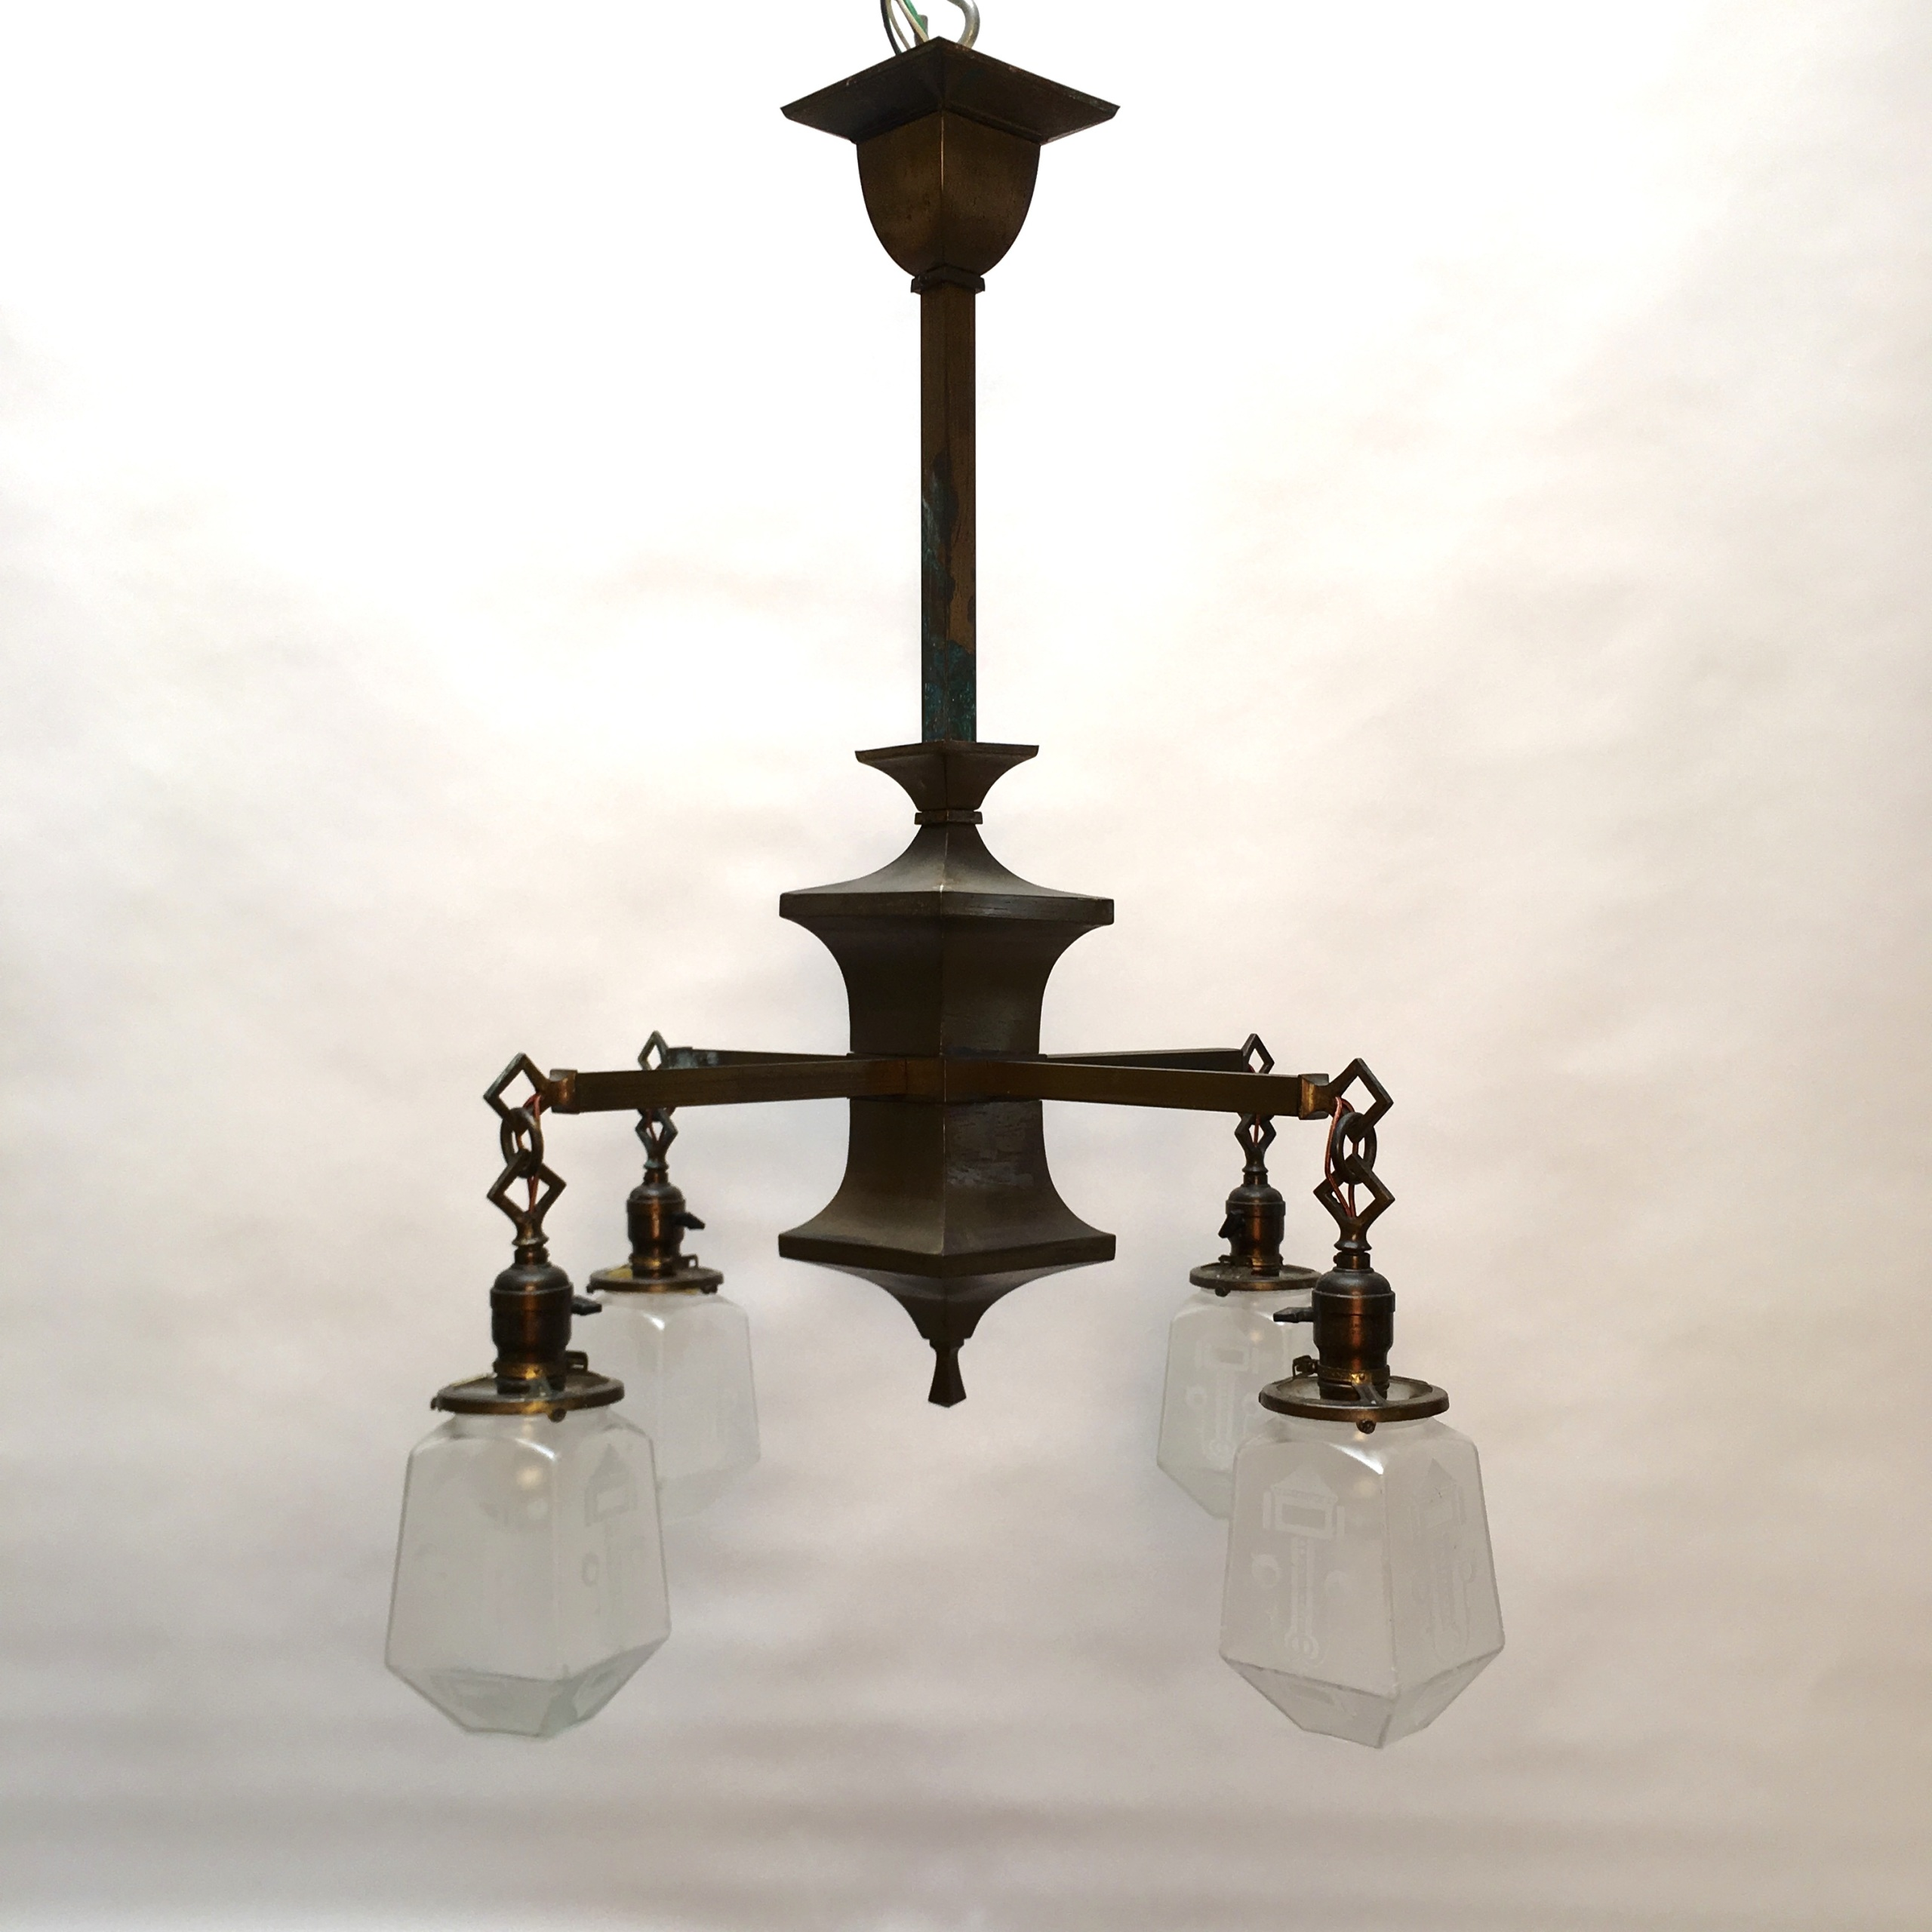 4 Arm Craftsman Chandelier SOLD